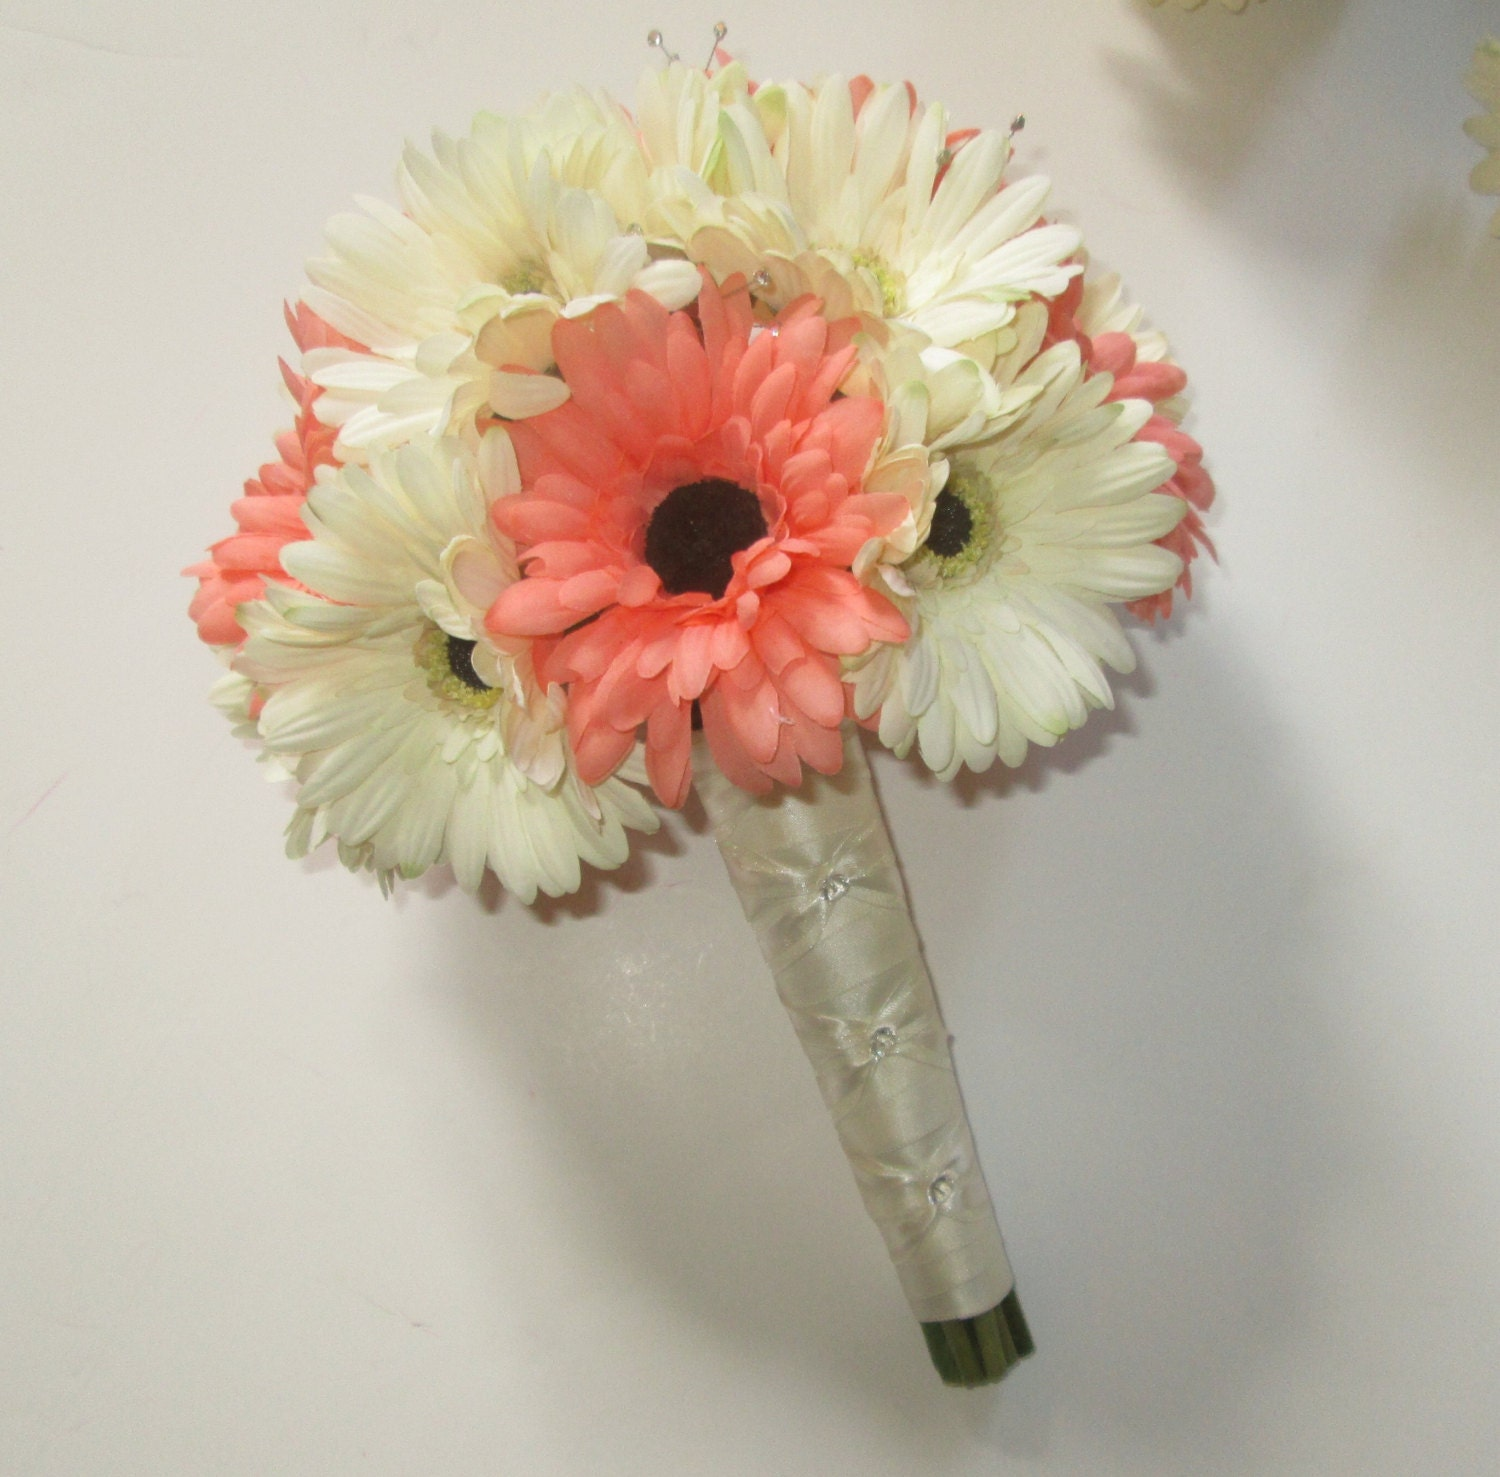 Wedding Bouquet Of Gerbera Daisies : Gerbera daisy wedding bouquet silk